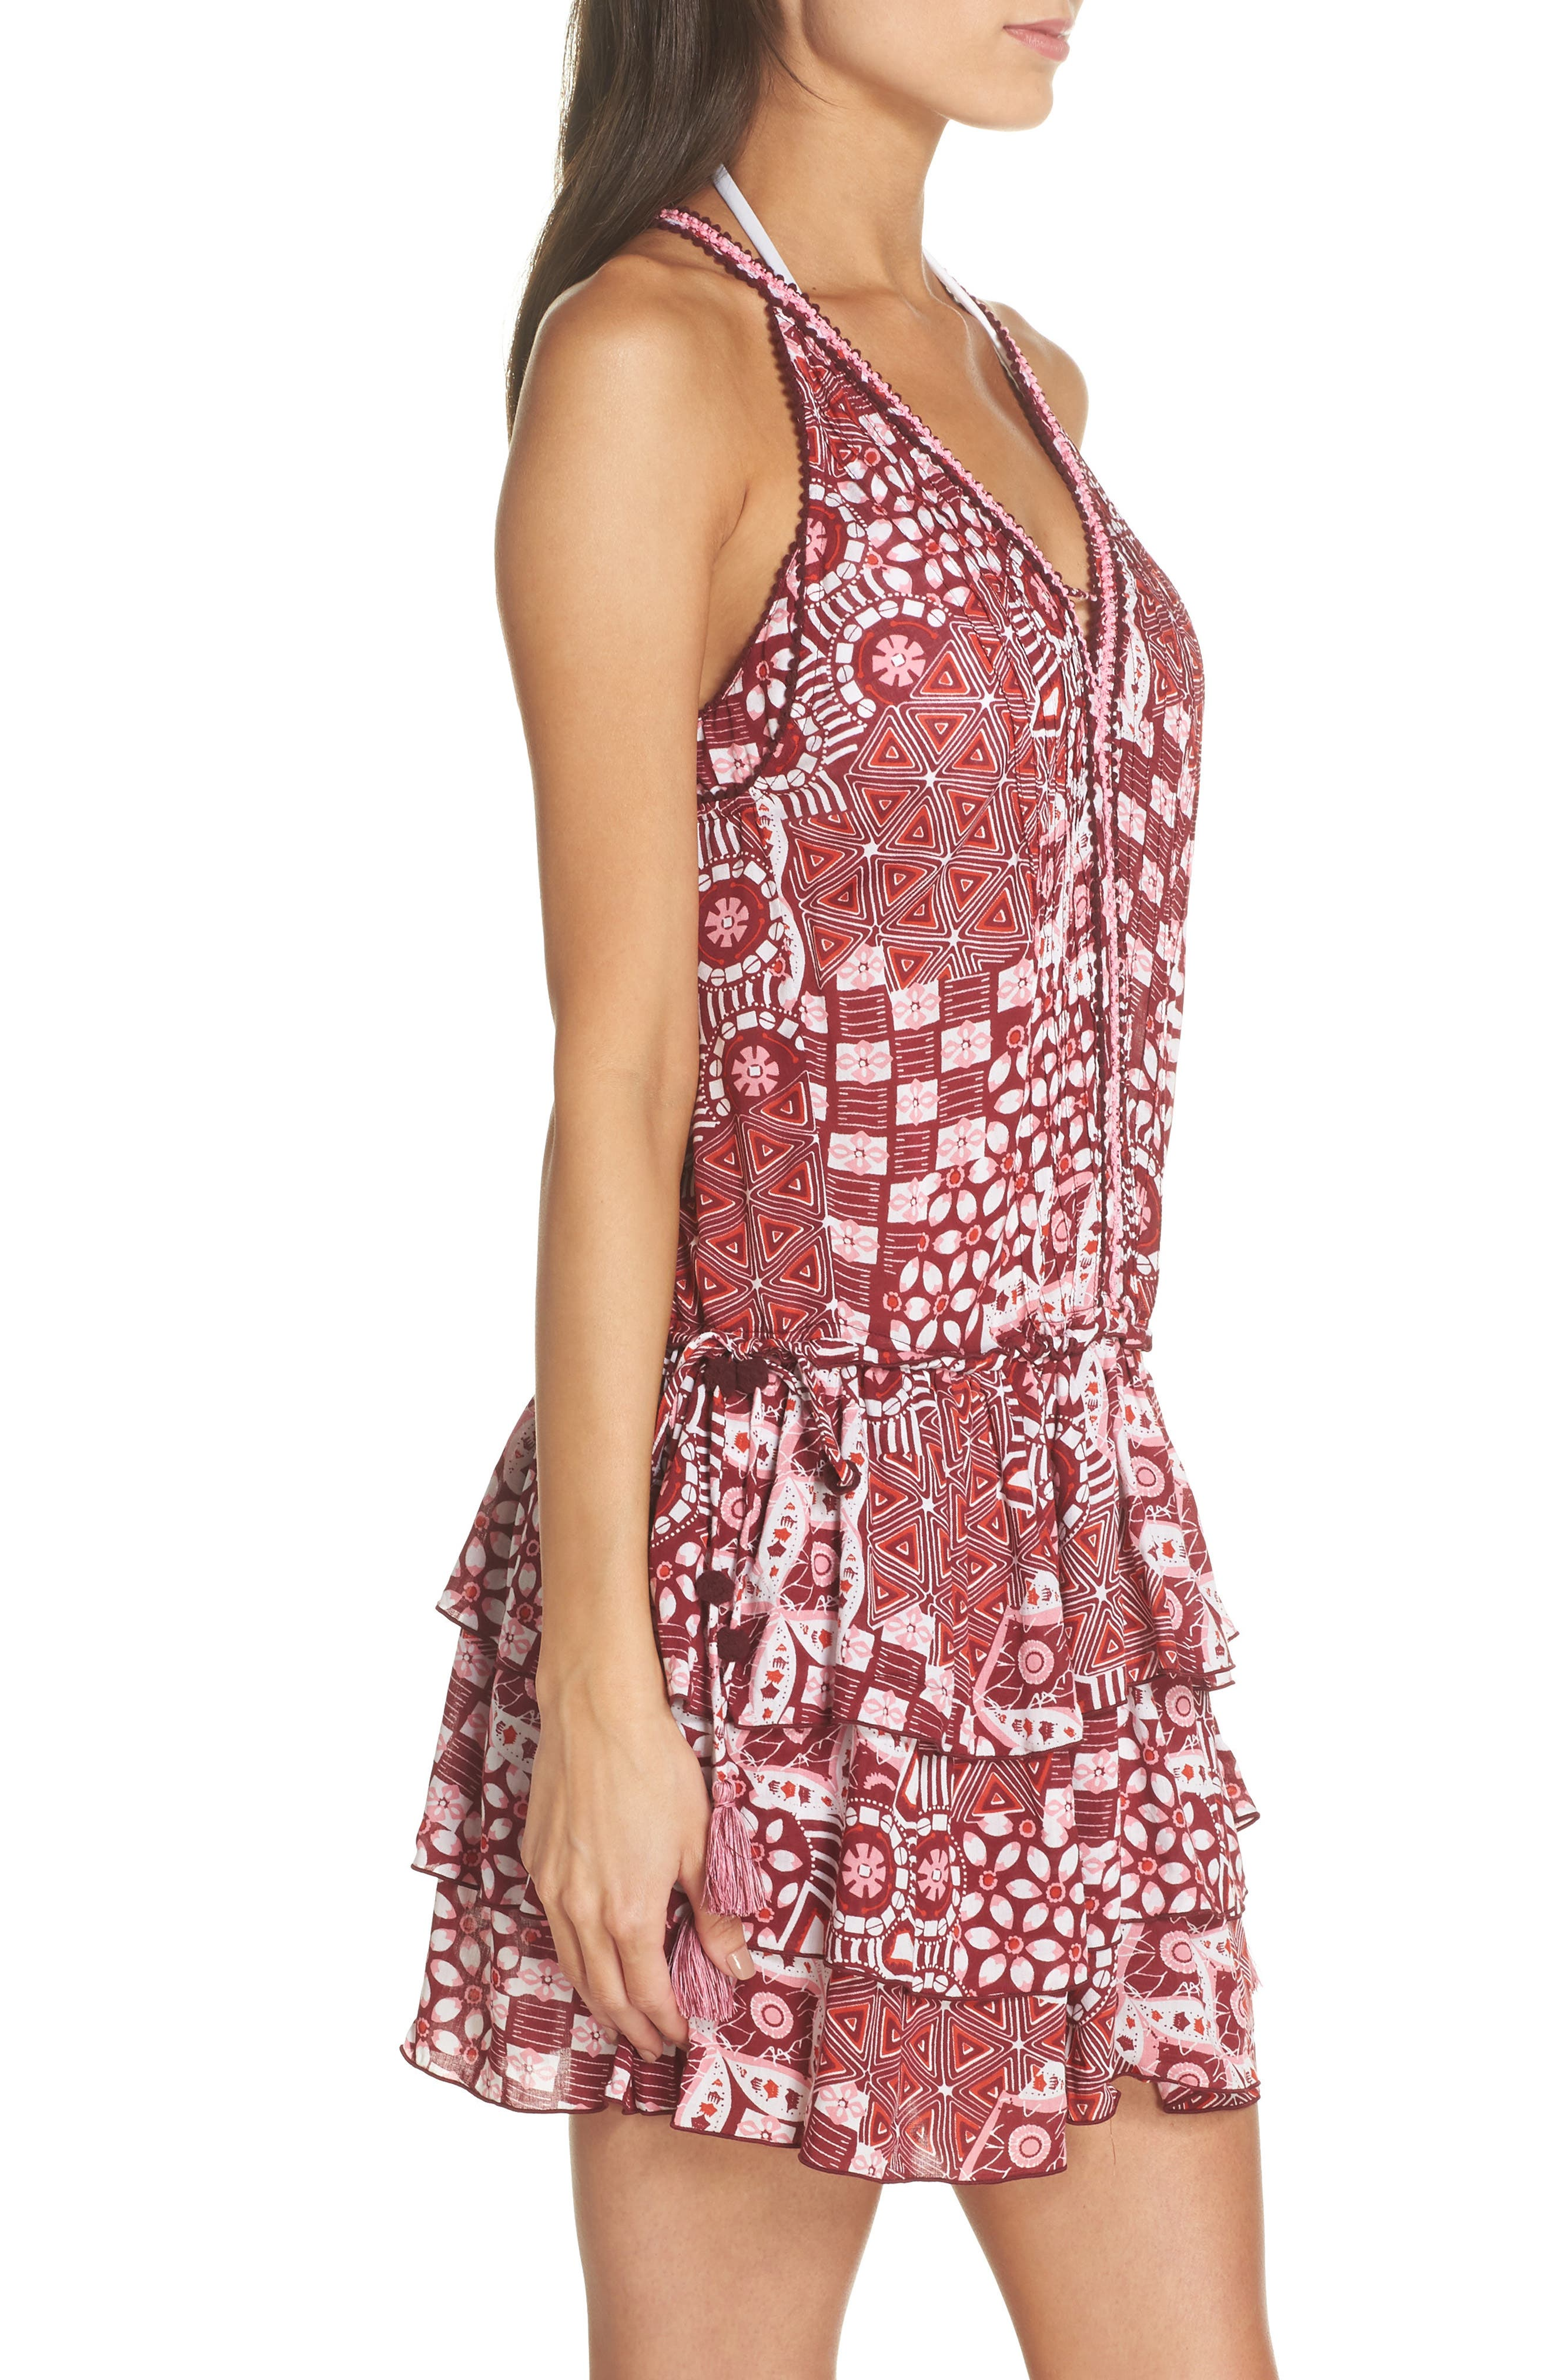 Poupette St. Barth Bety Cover-Up Minidress,                             Alternate thumbnail 3, color,                             650